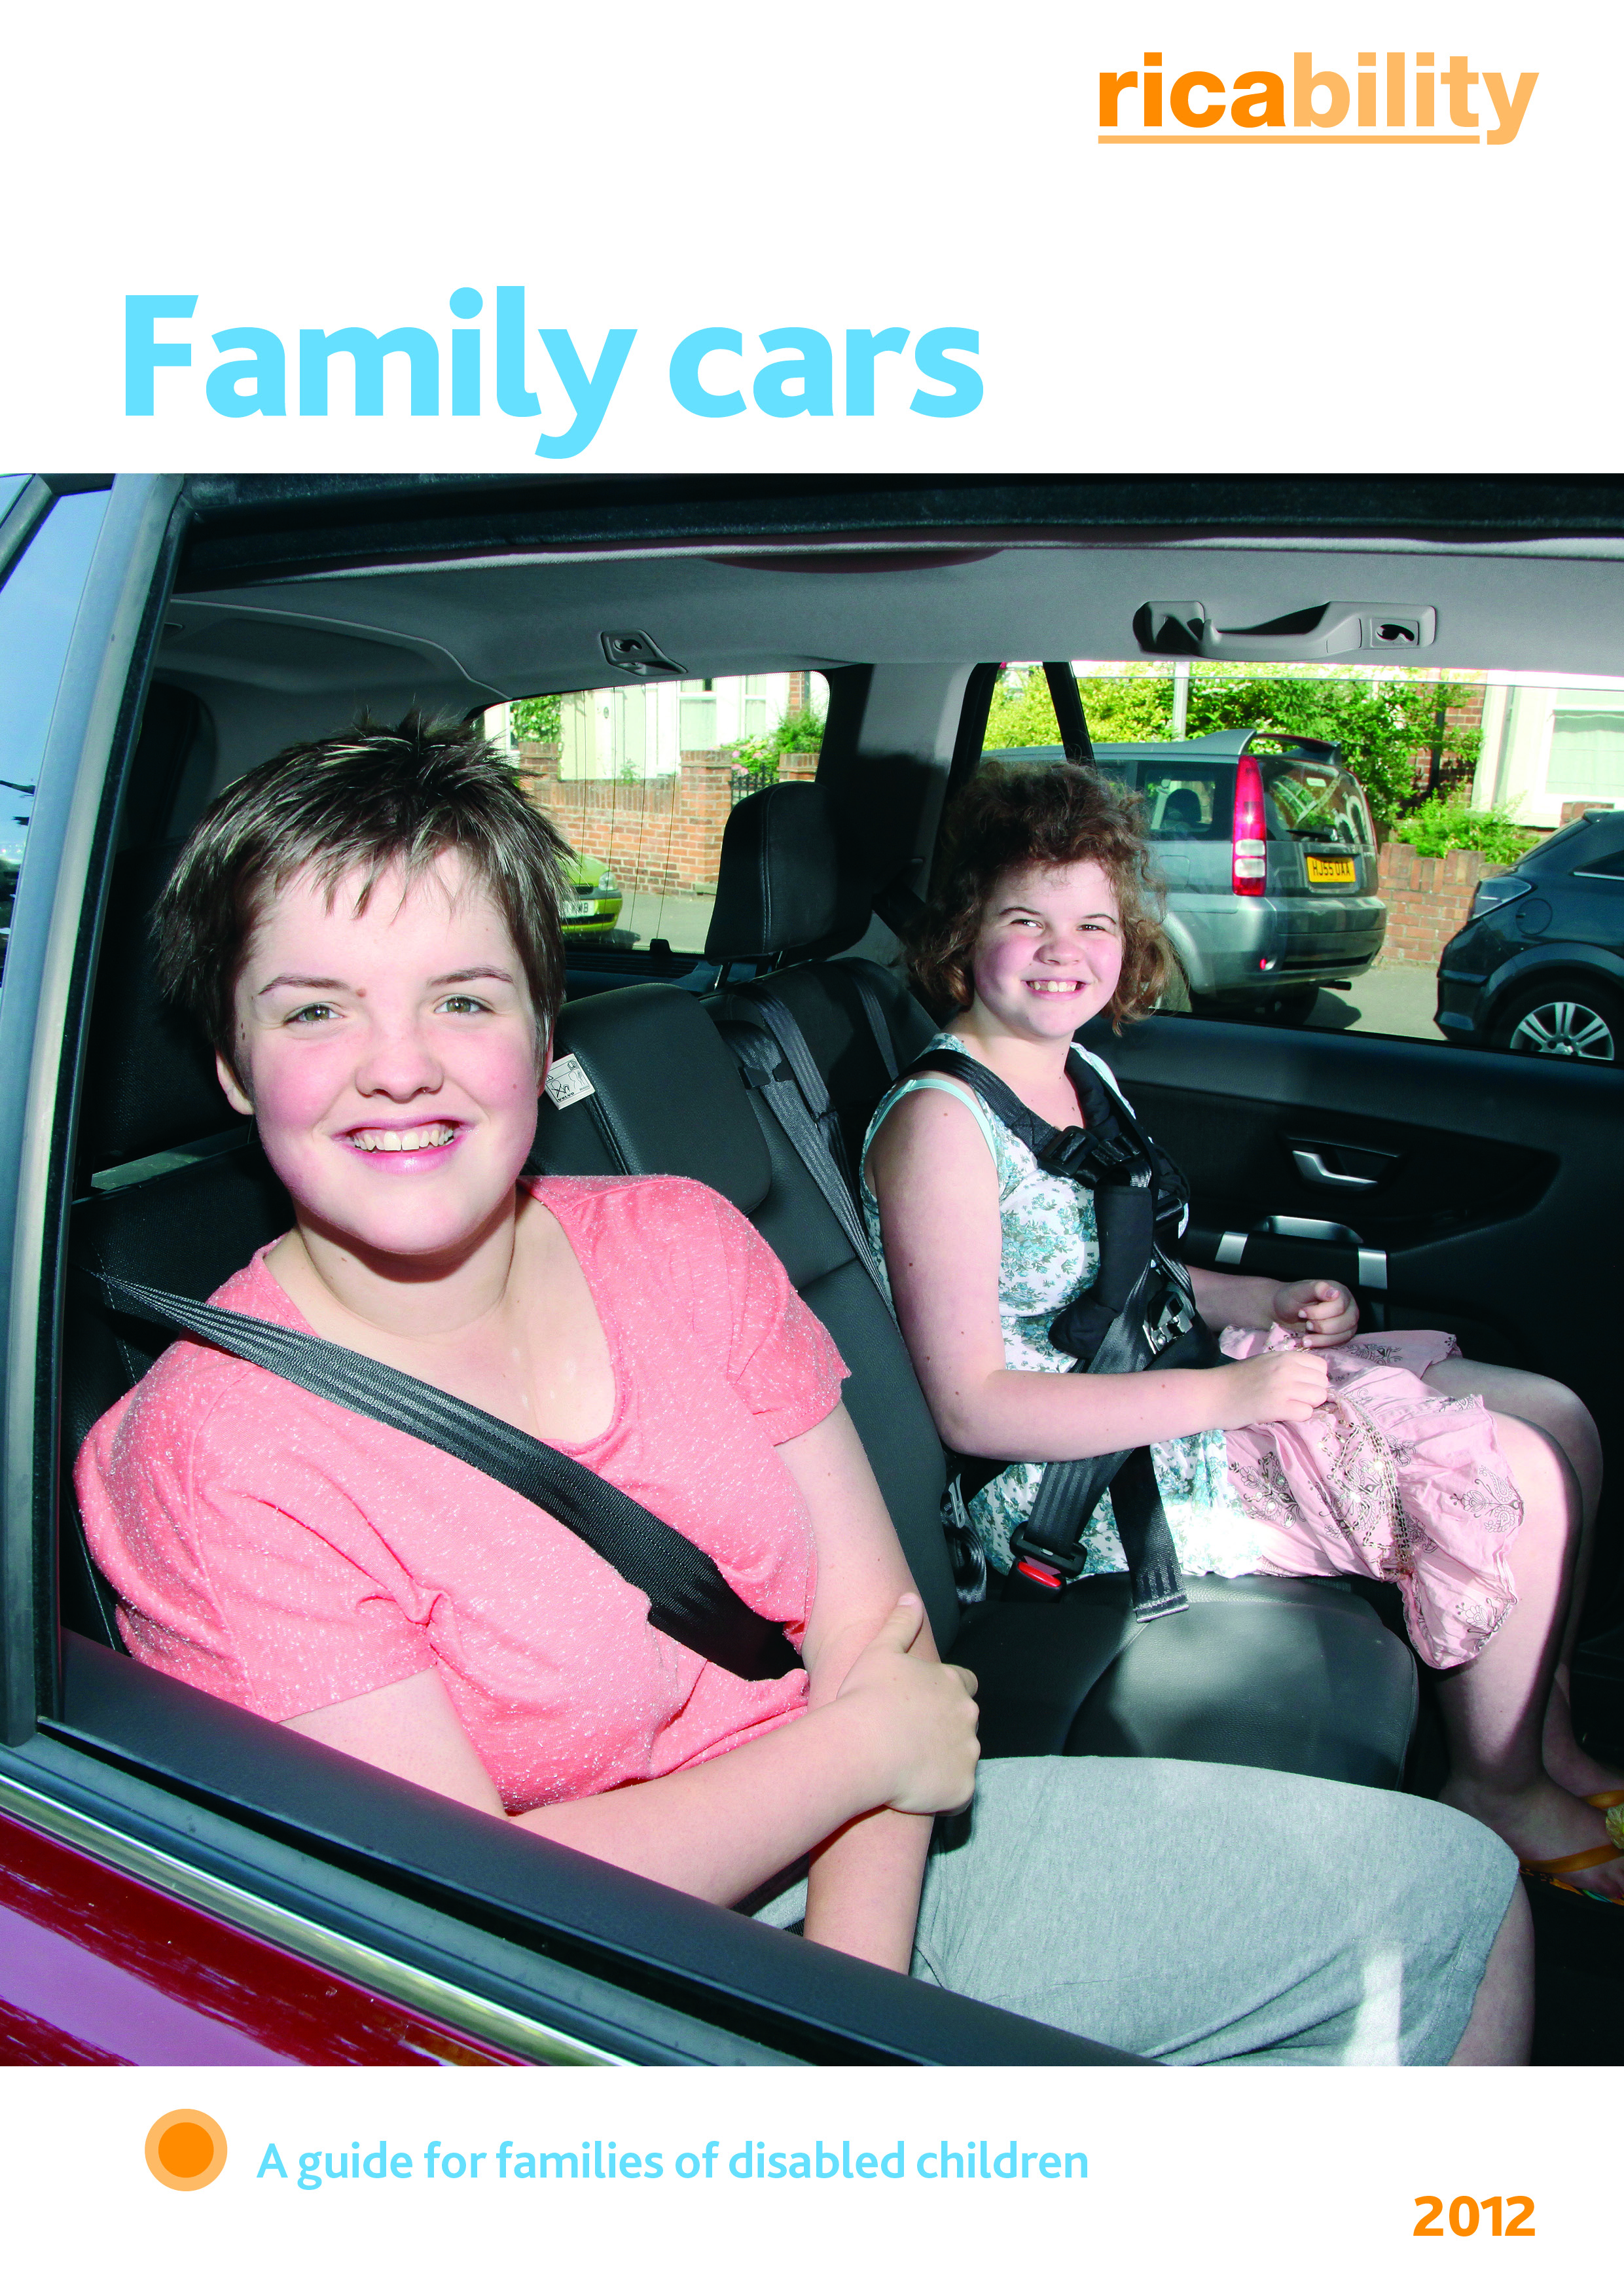 Parents Can Find Out Useful Information In A Free Booklet Family Cars Guide For Families Of Disabled Children Produced By The Consumer Research Charity